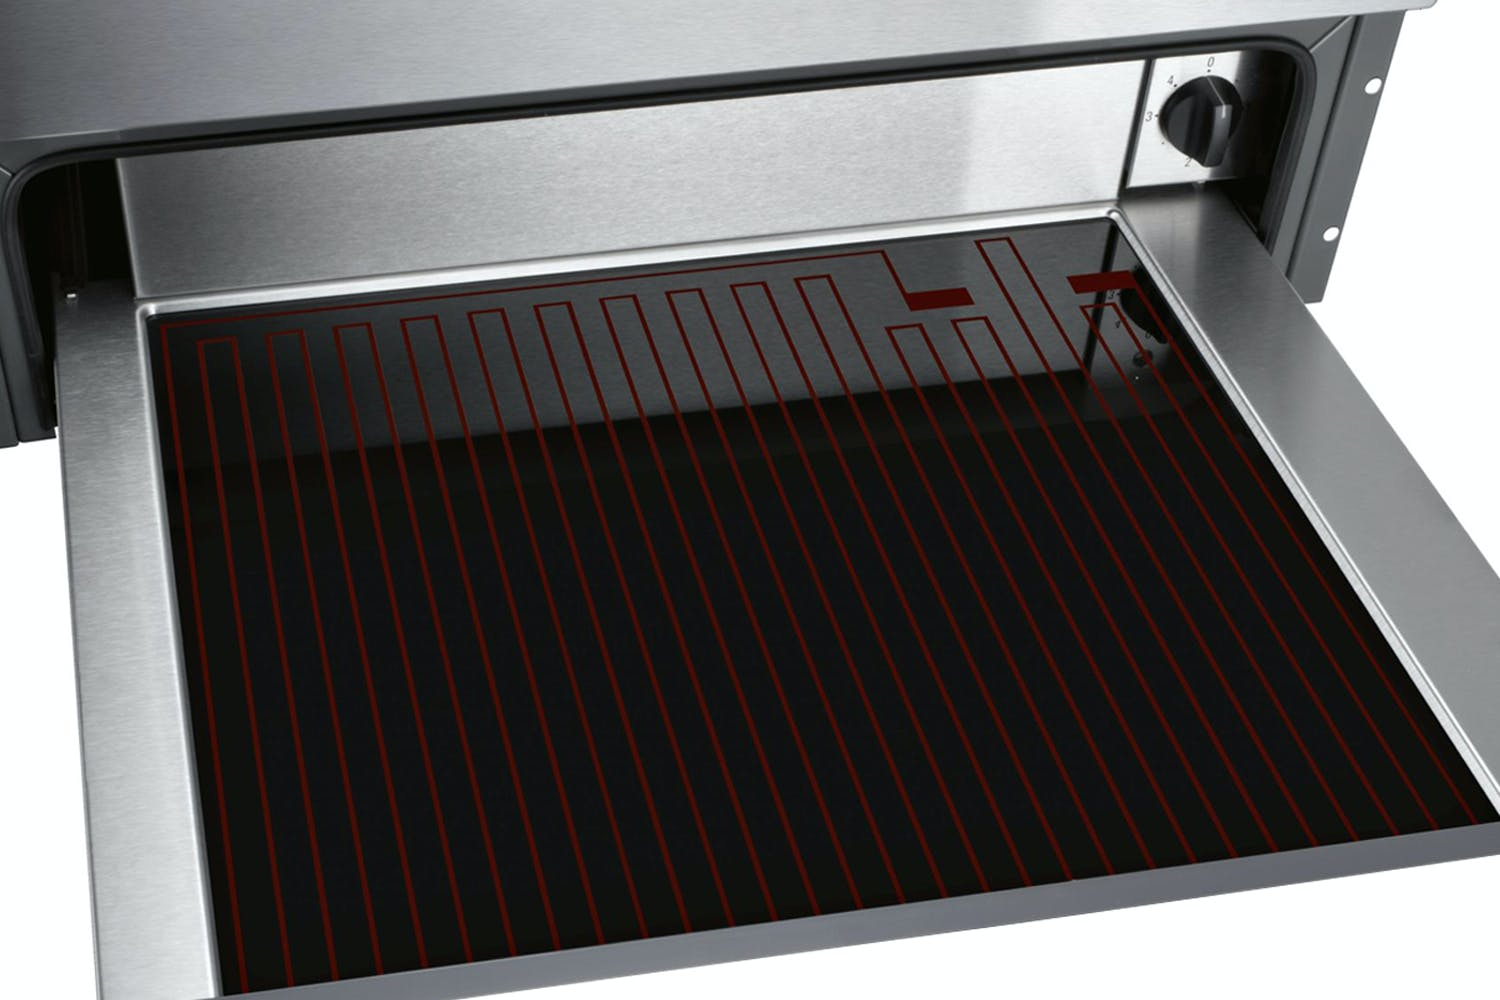 Neff N17HH20N0B Push-pull 29cm Height Warming Drawer Stainless Steel